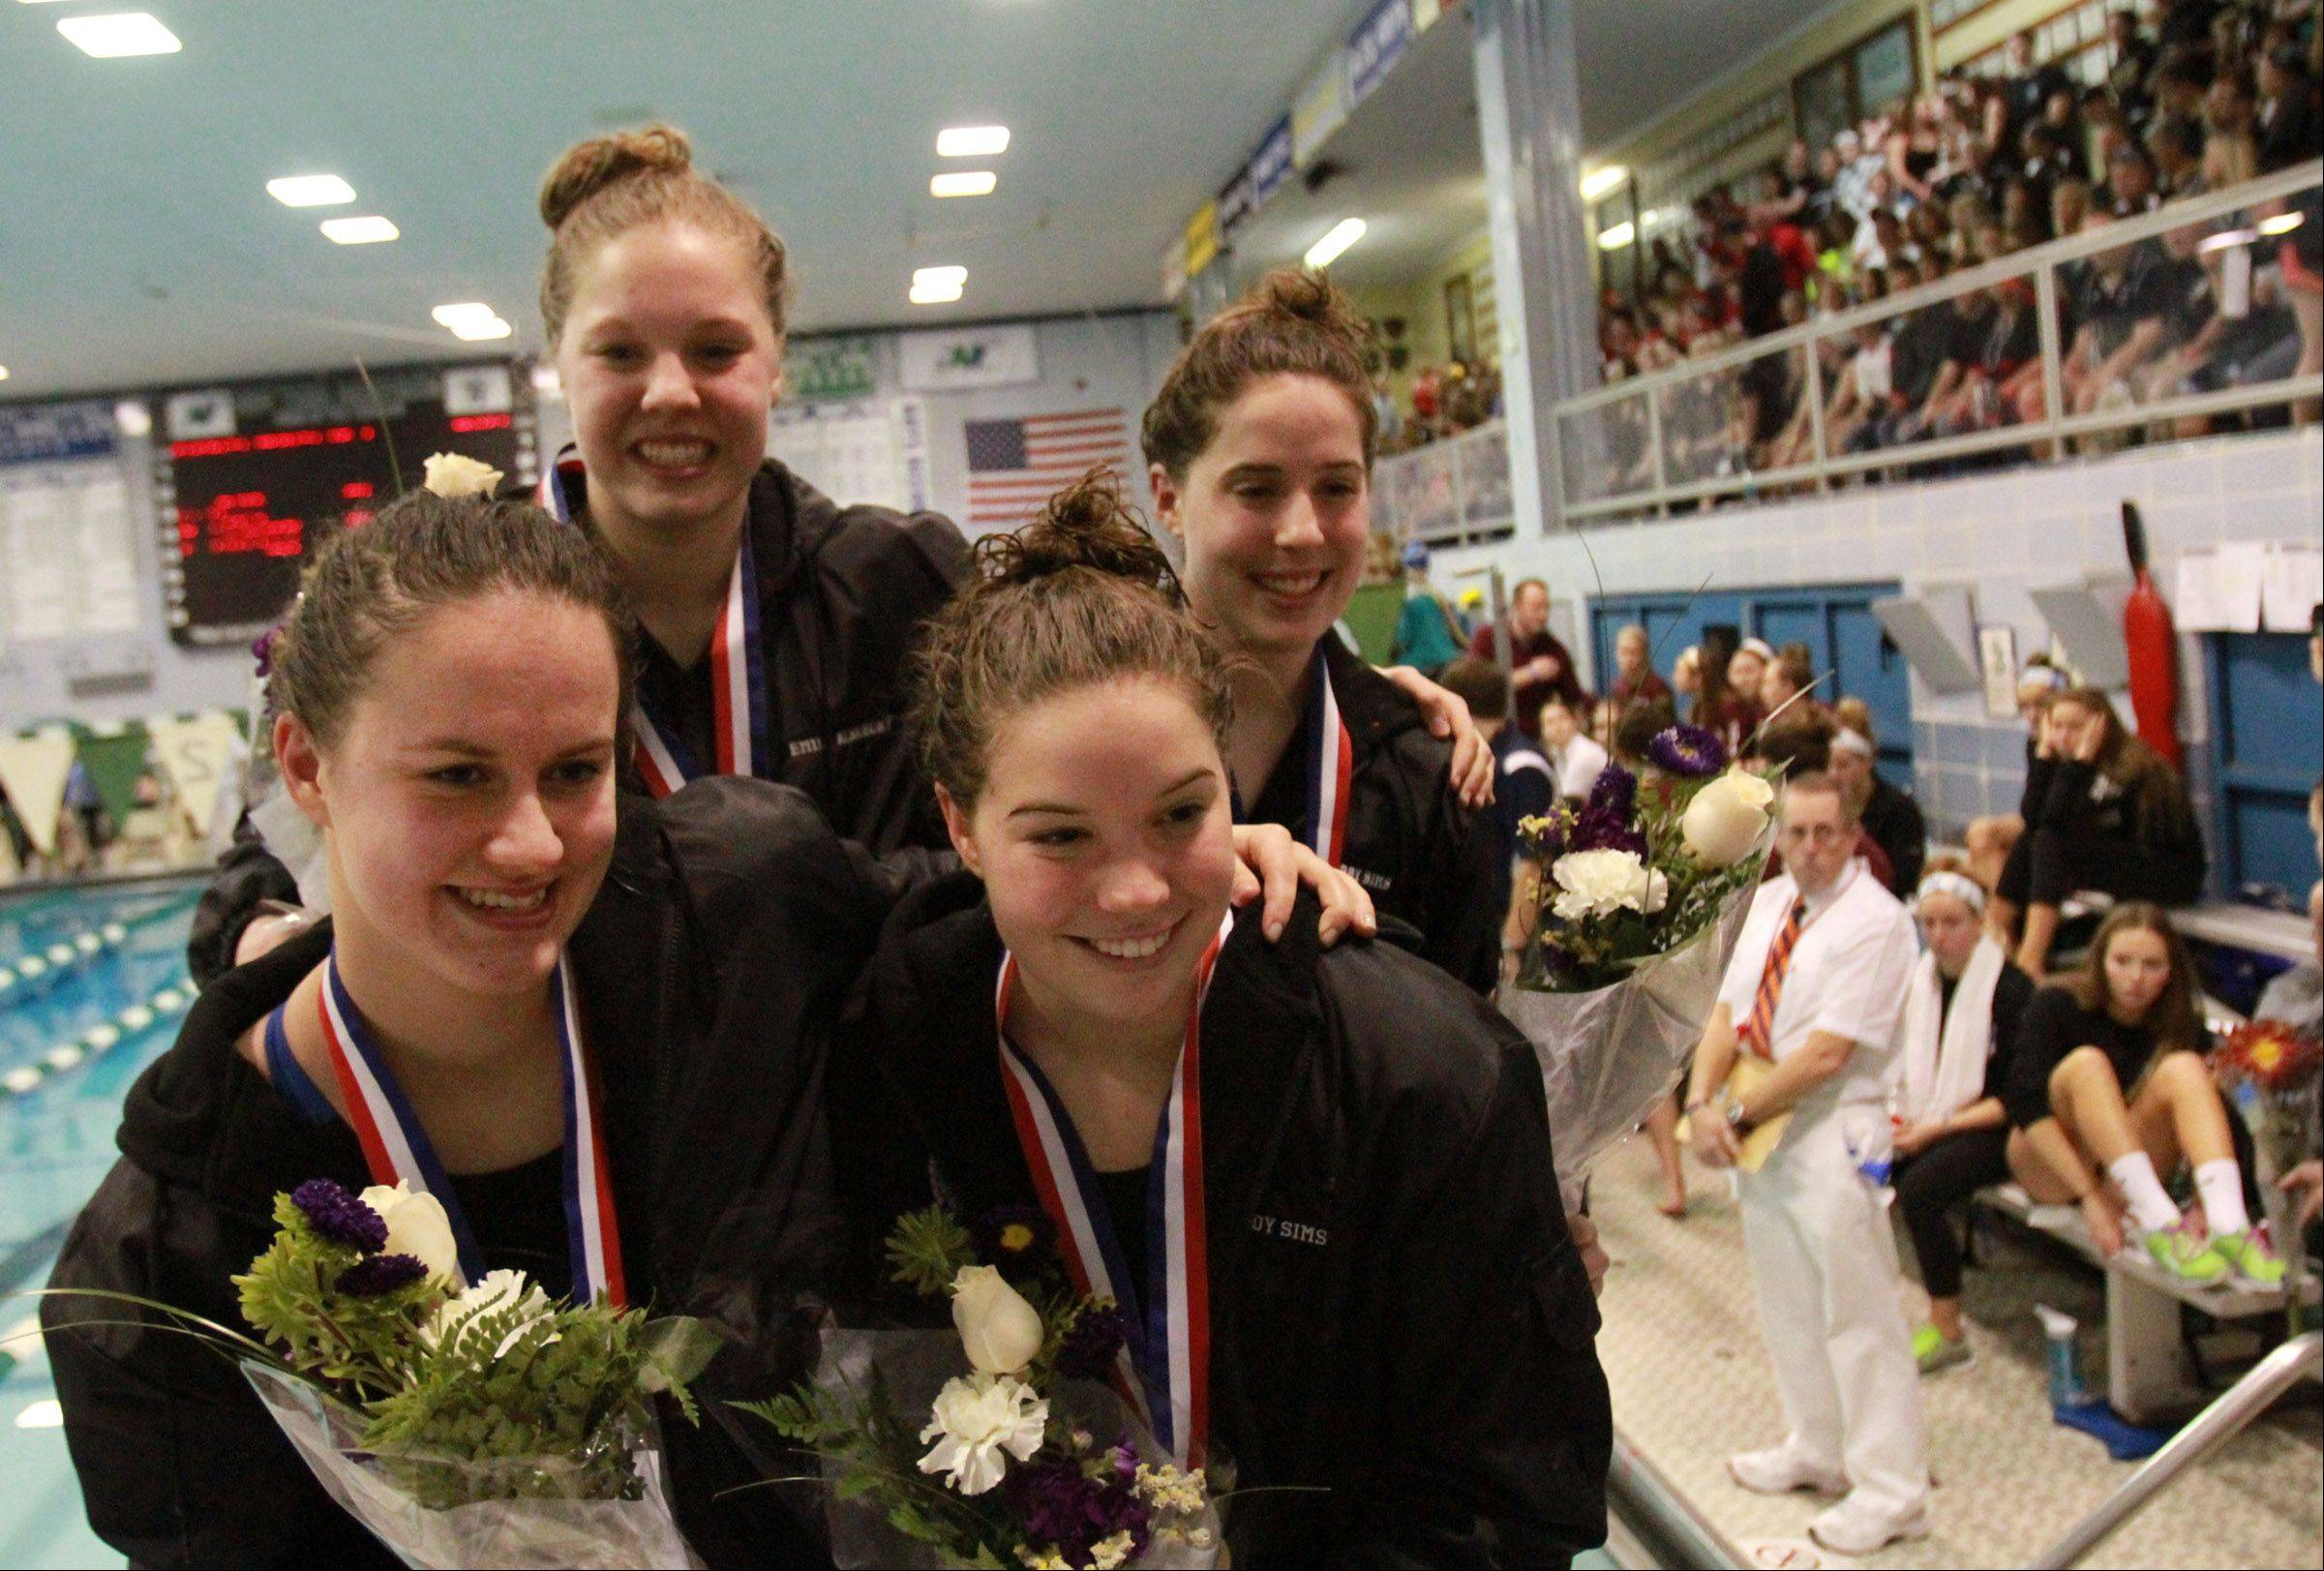 Downers Grove Gabby Sims, Gabriele, Maddy Sims, and Emily Albrecht placed first in 200 medley relay at the girls state swimming finals on Saturday in Winnetka.